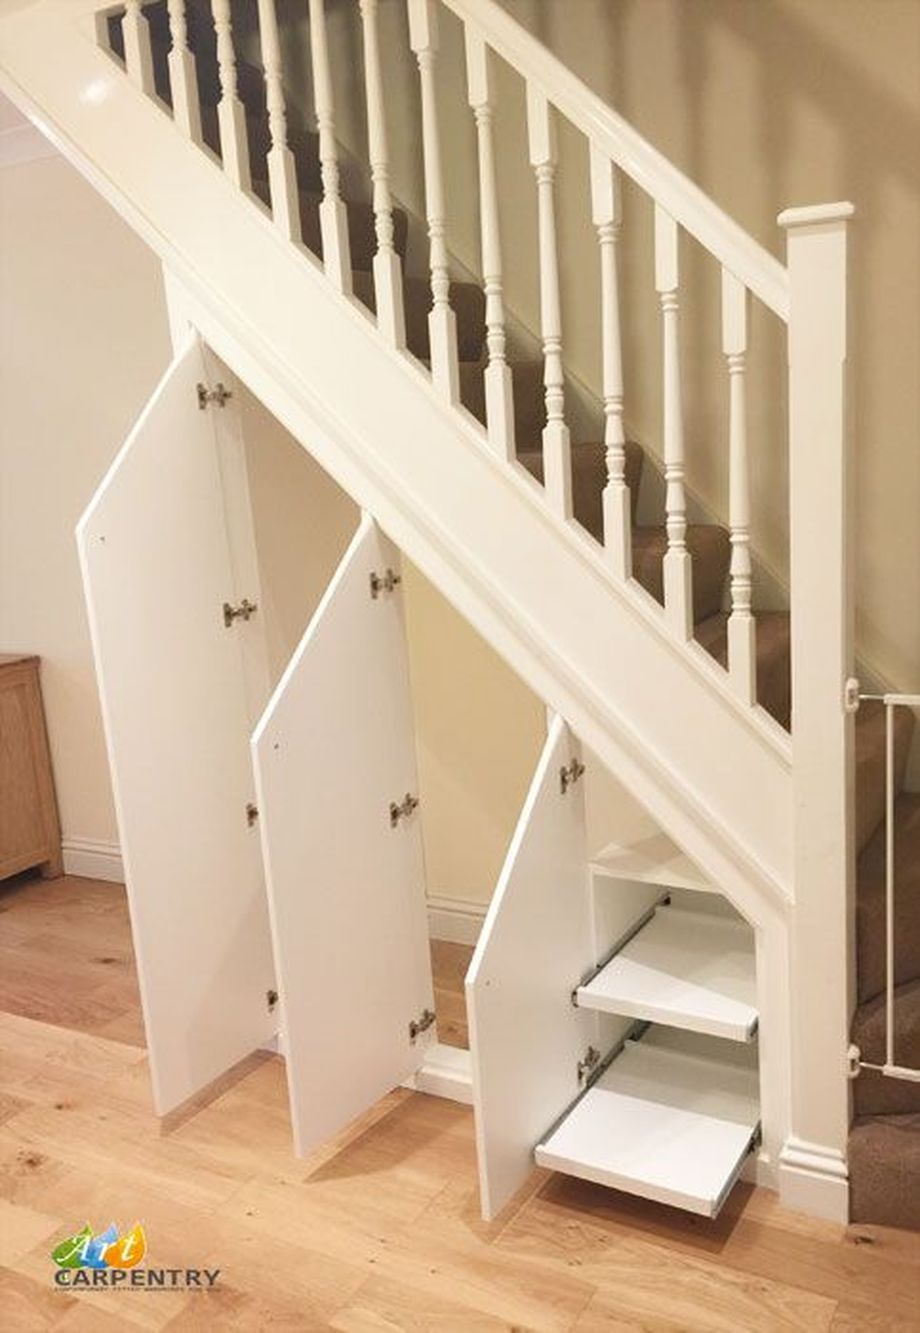 Awesome Cool Ideas To Make Storage Under Stairs 70 Under Stairs